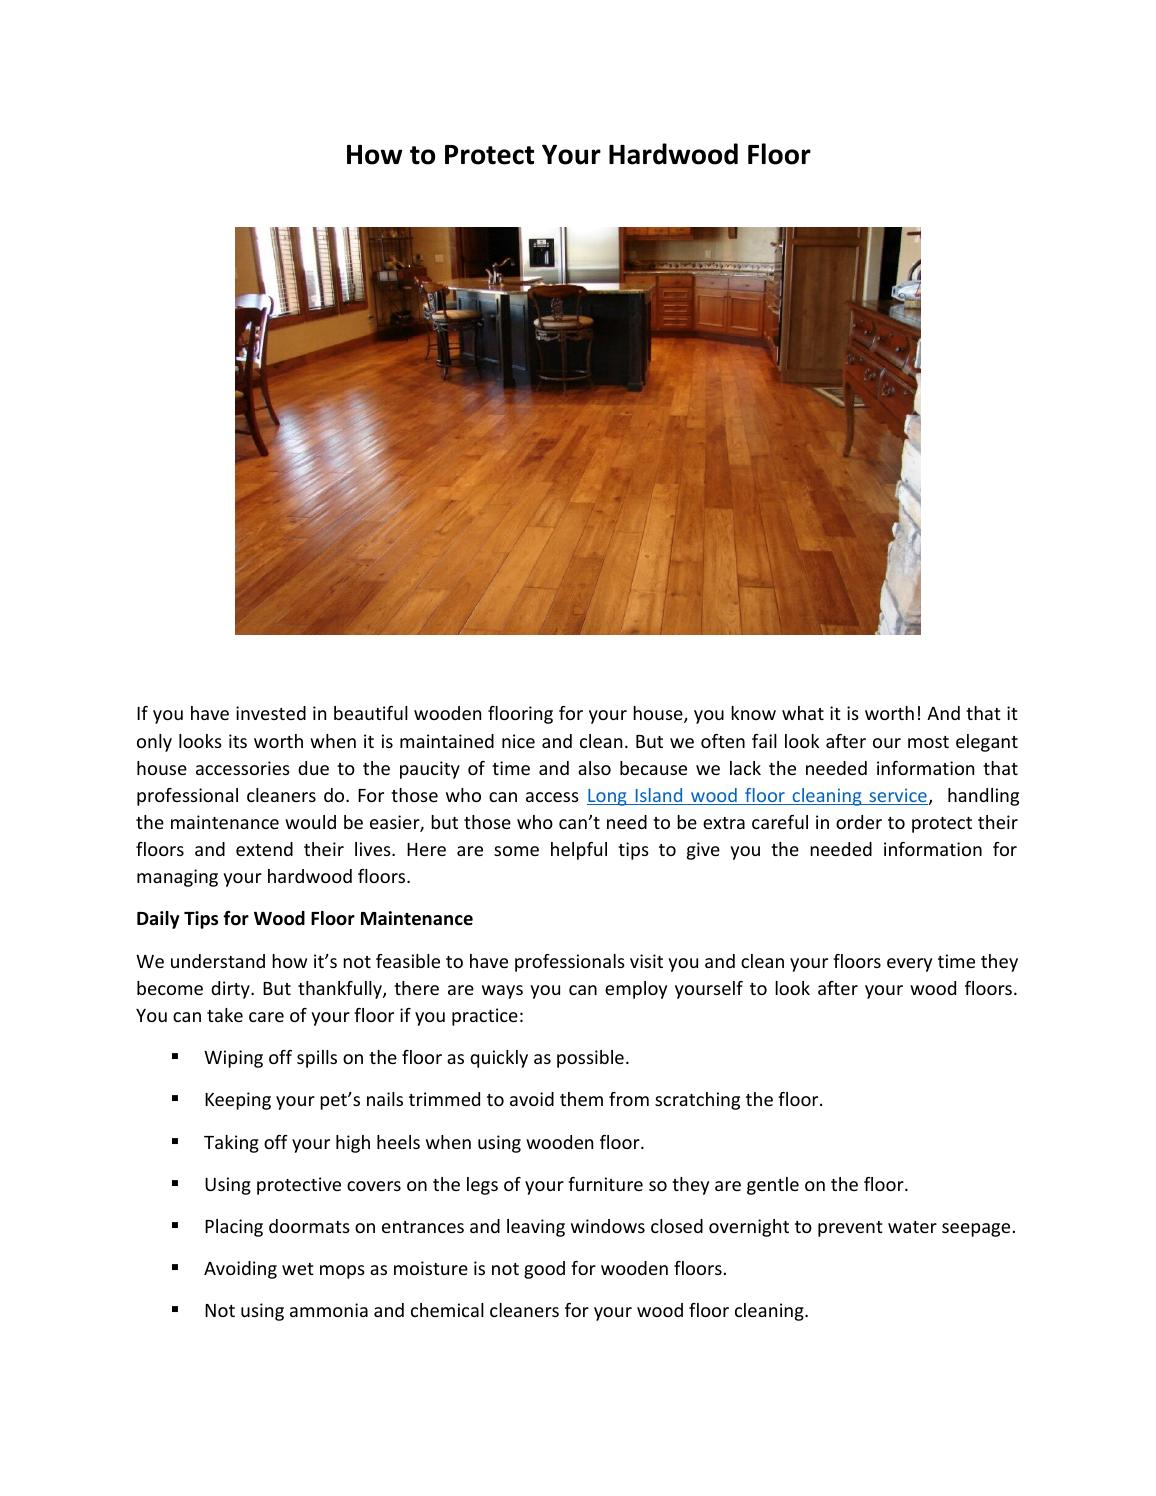 How To Protect Your Hardwood Floor By